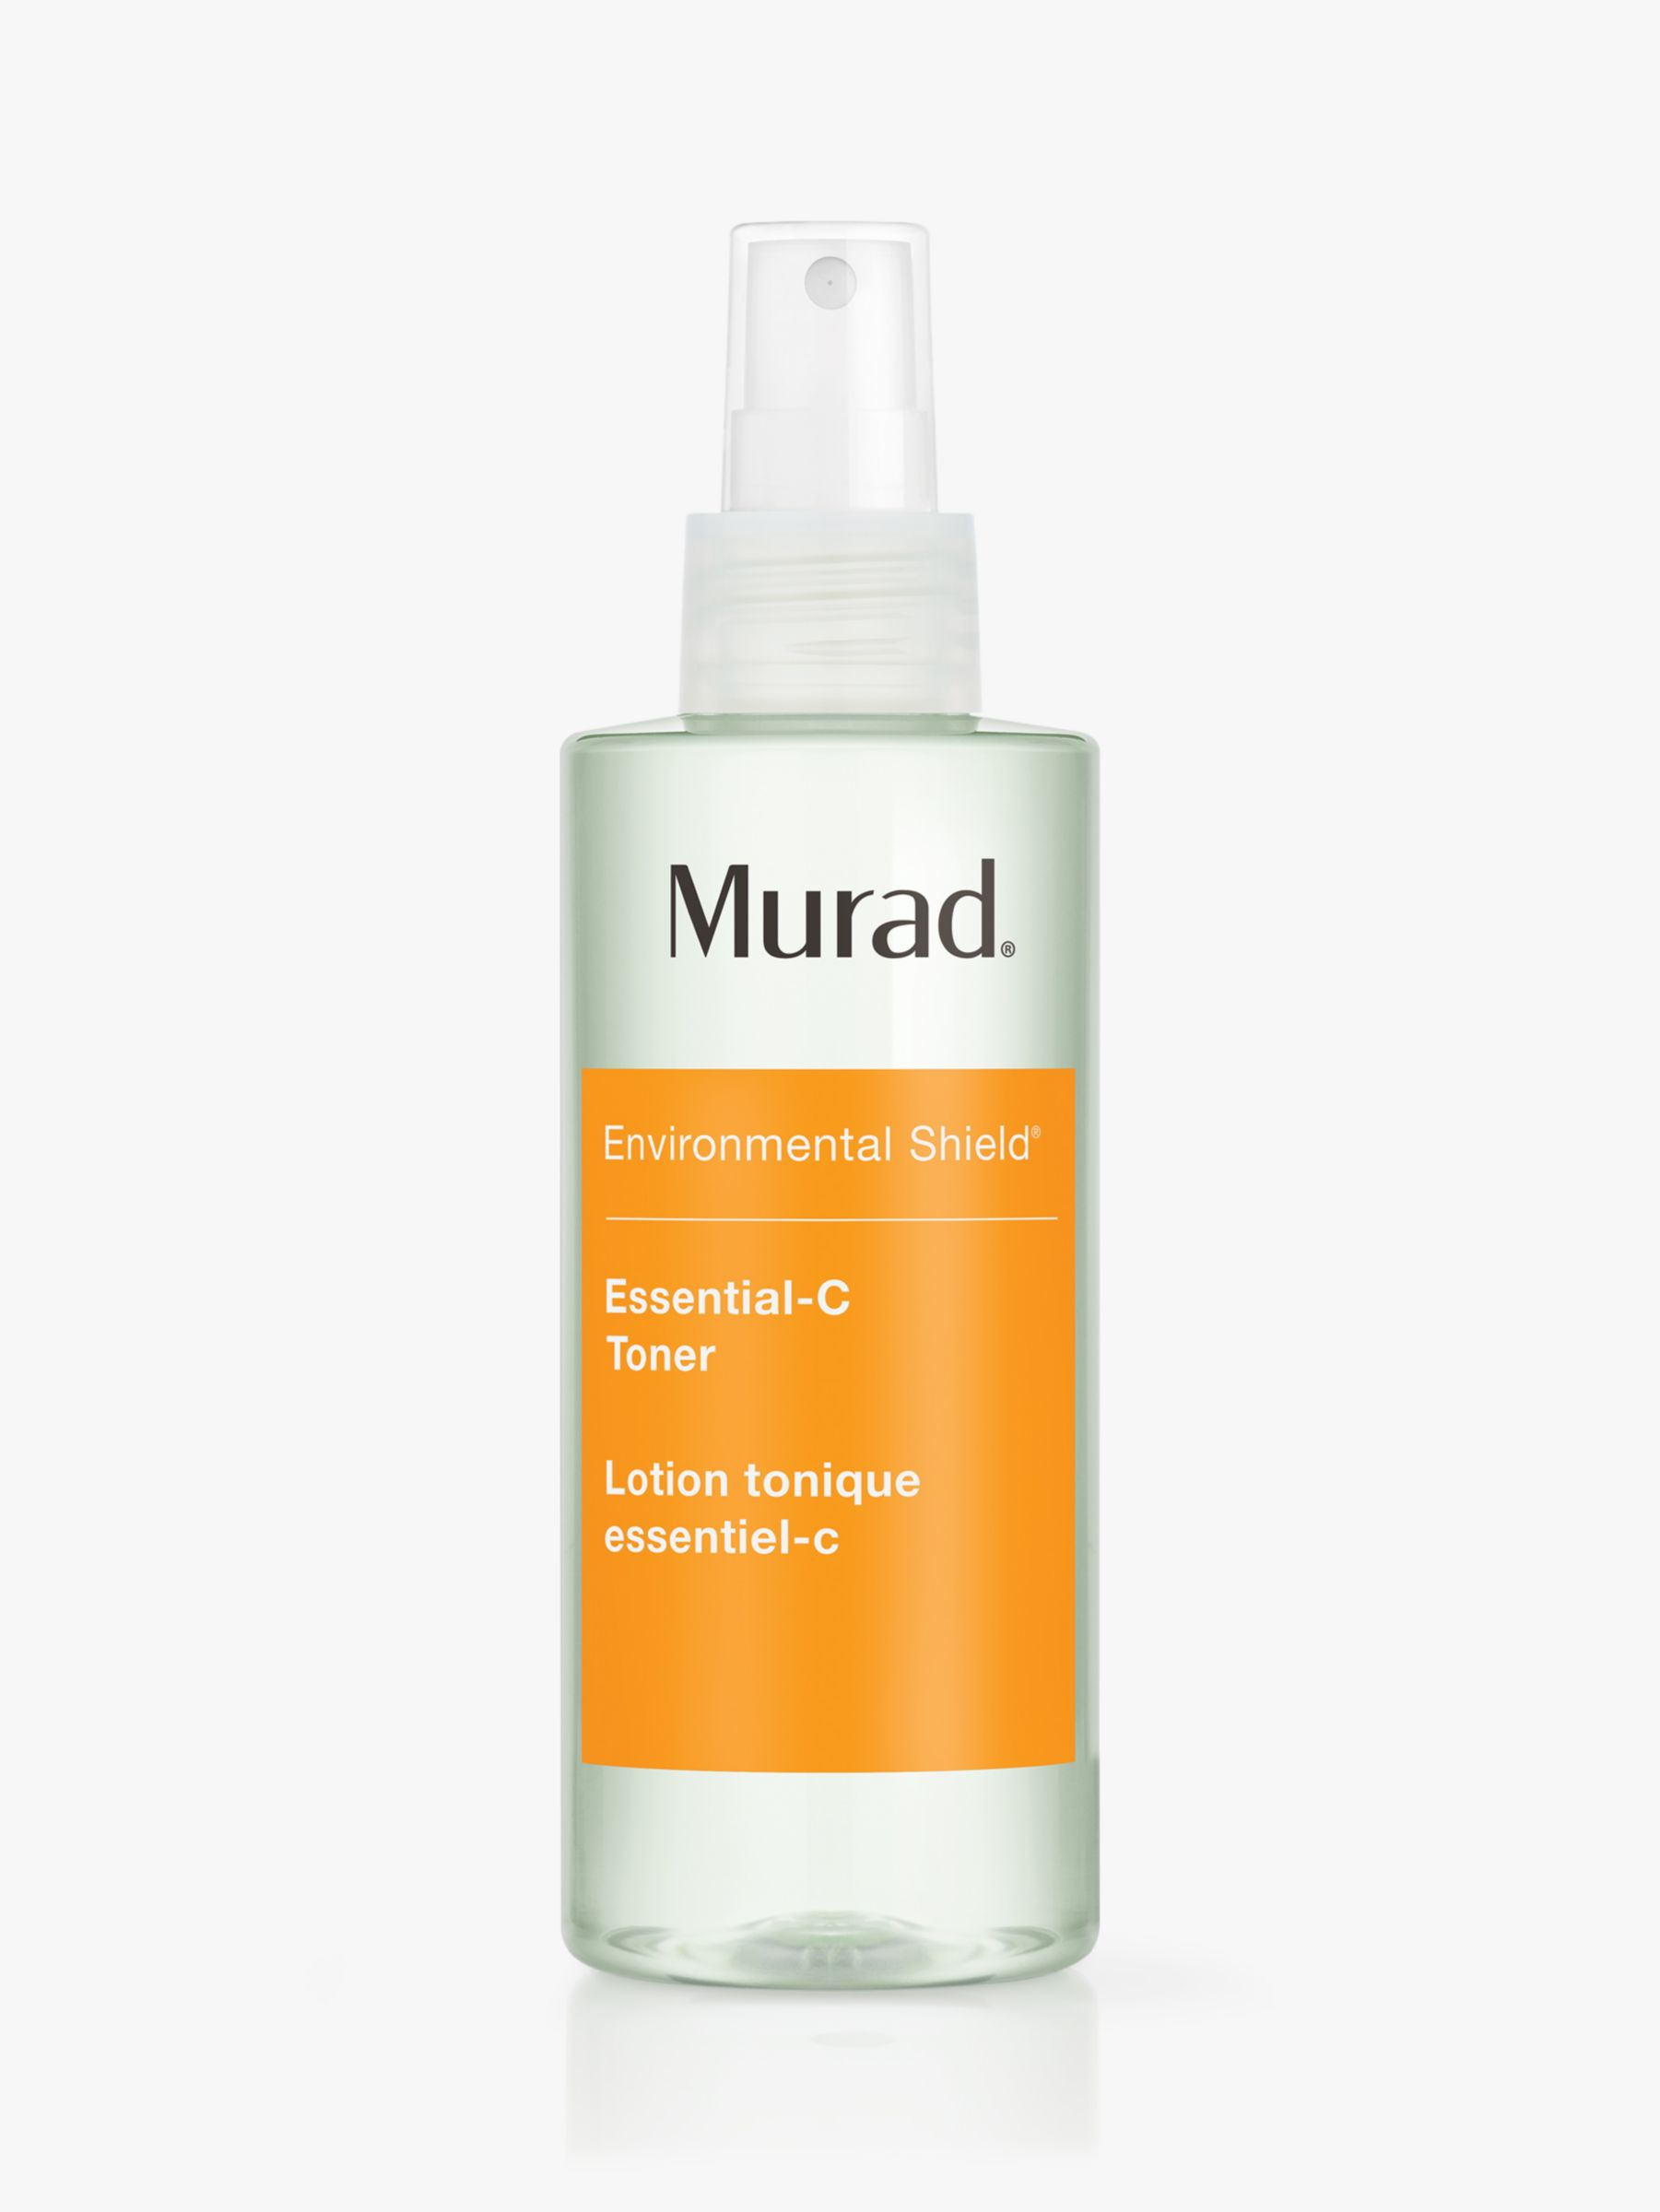 Murad Murad Essential-C Toner, 180ml